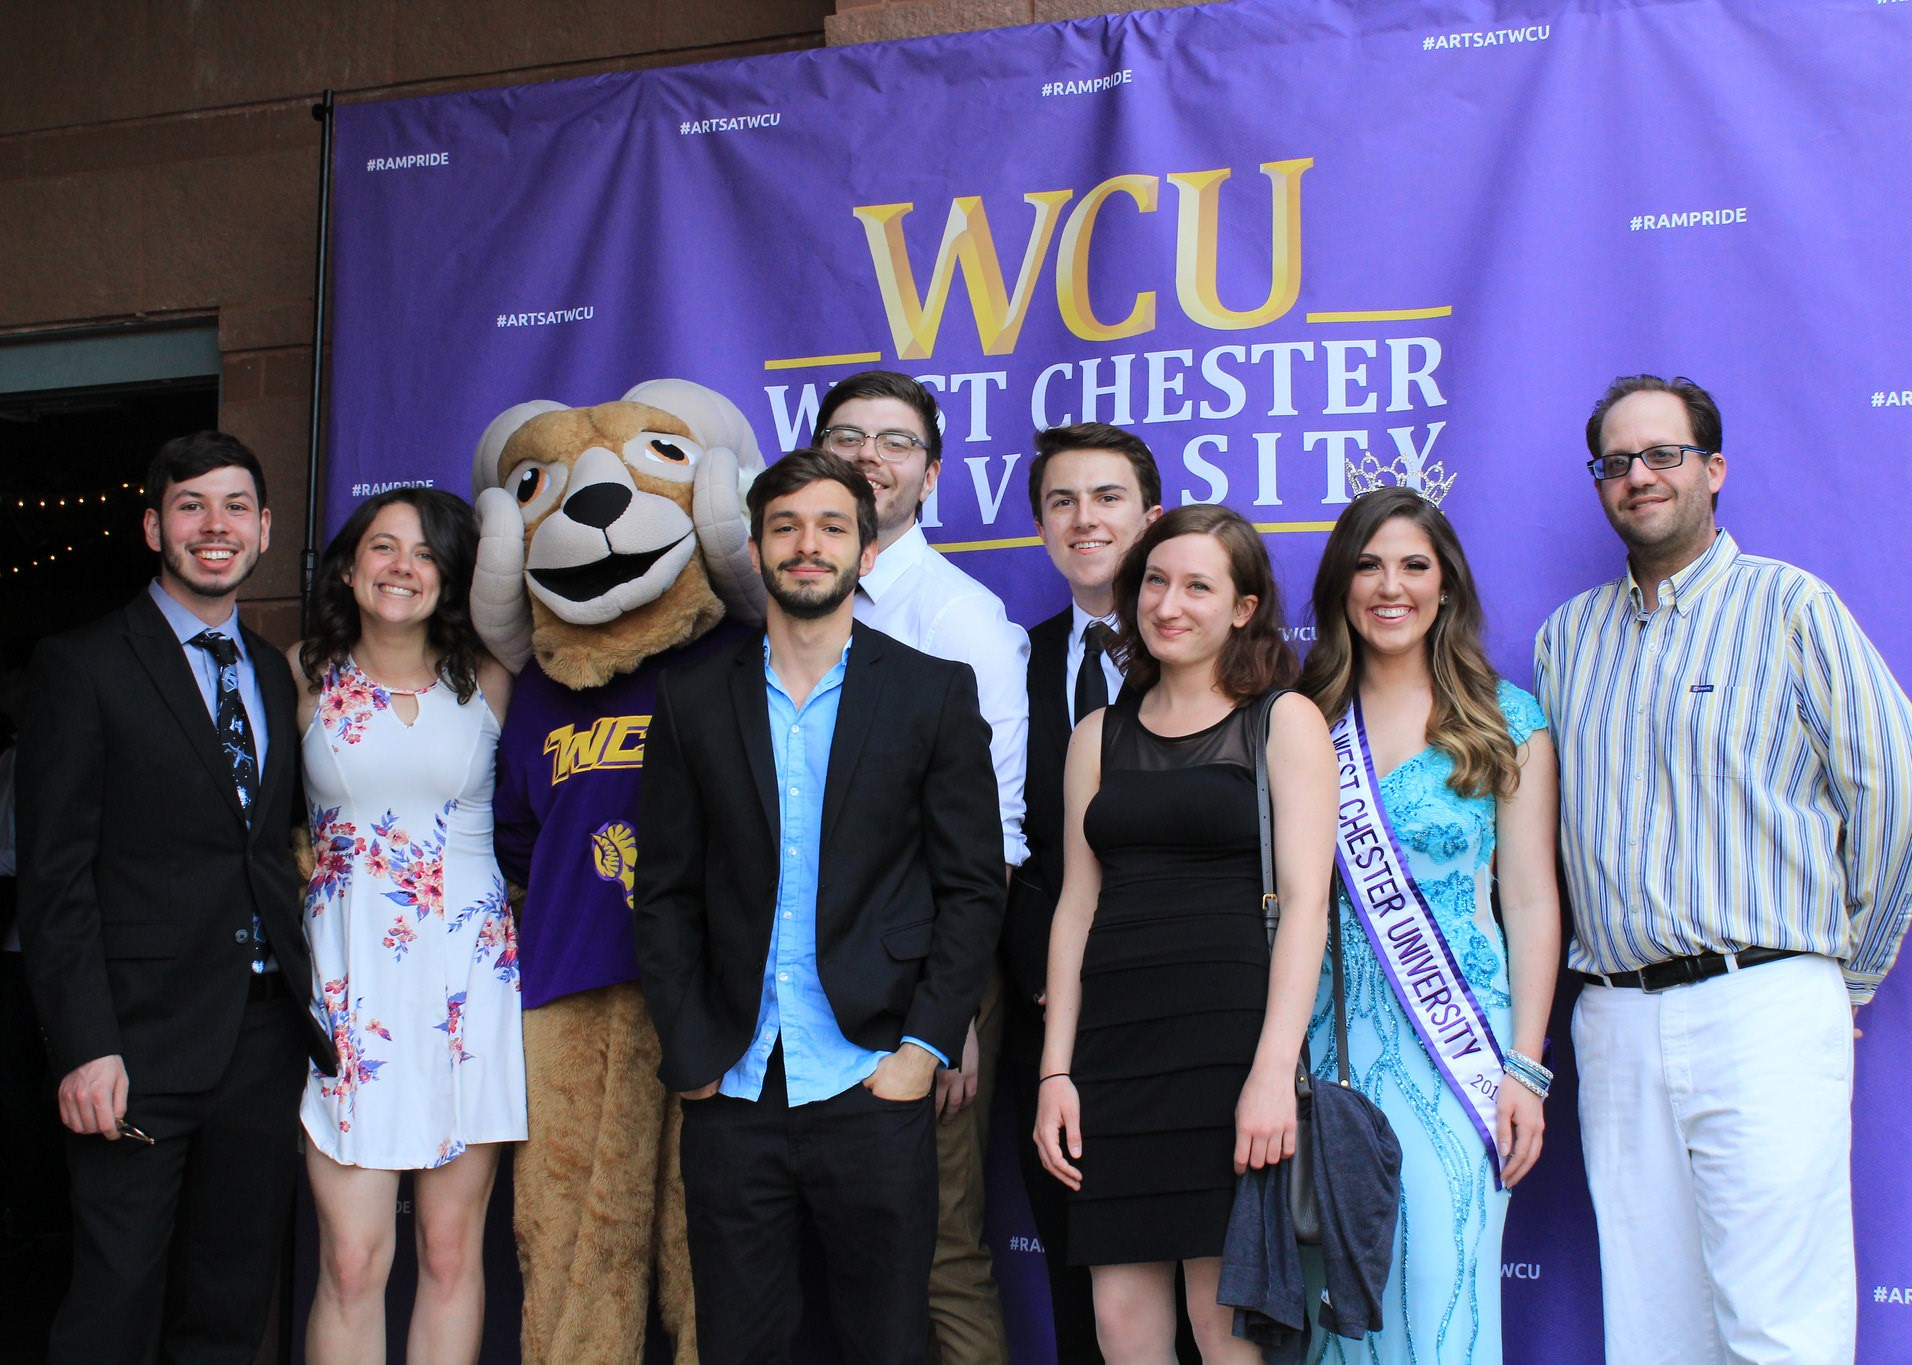 WCU's Inaugural 48HR DubC Film Race Showcases Talent of Fledgling Filmmakers